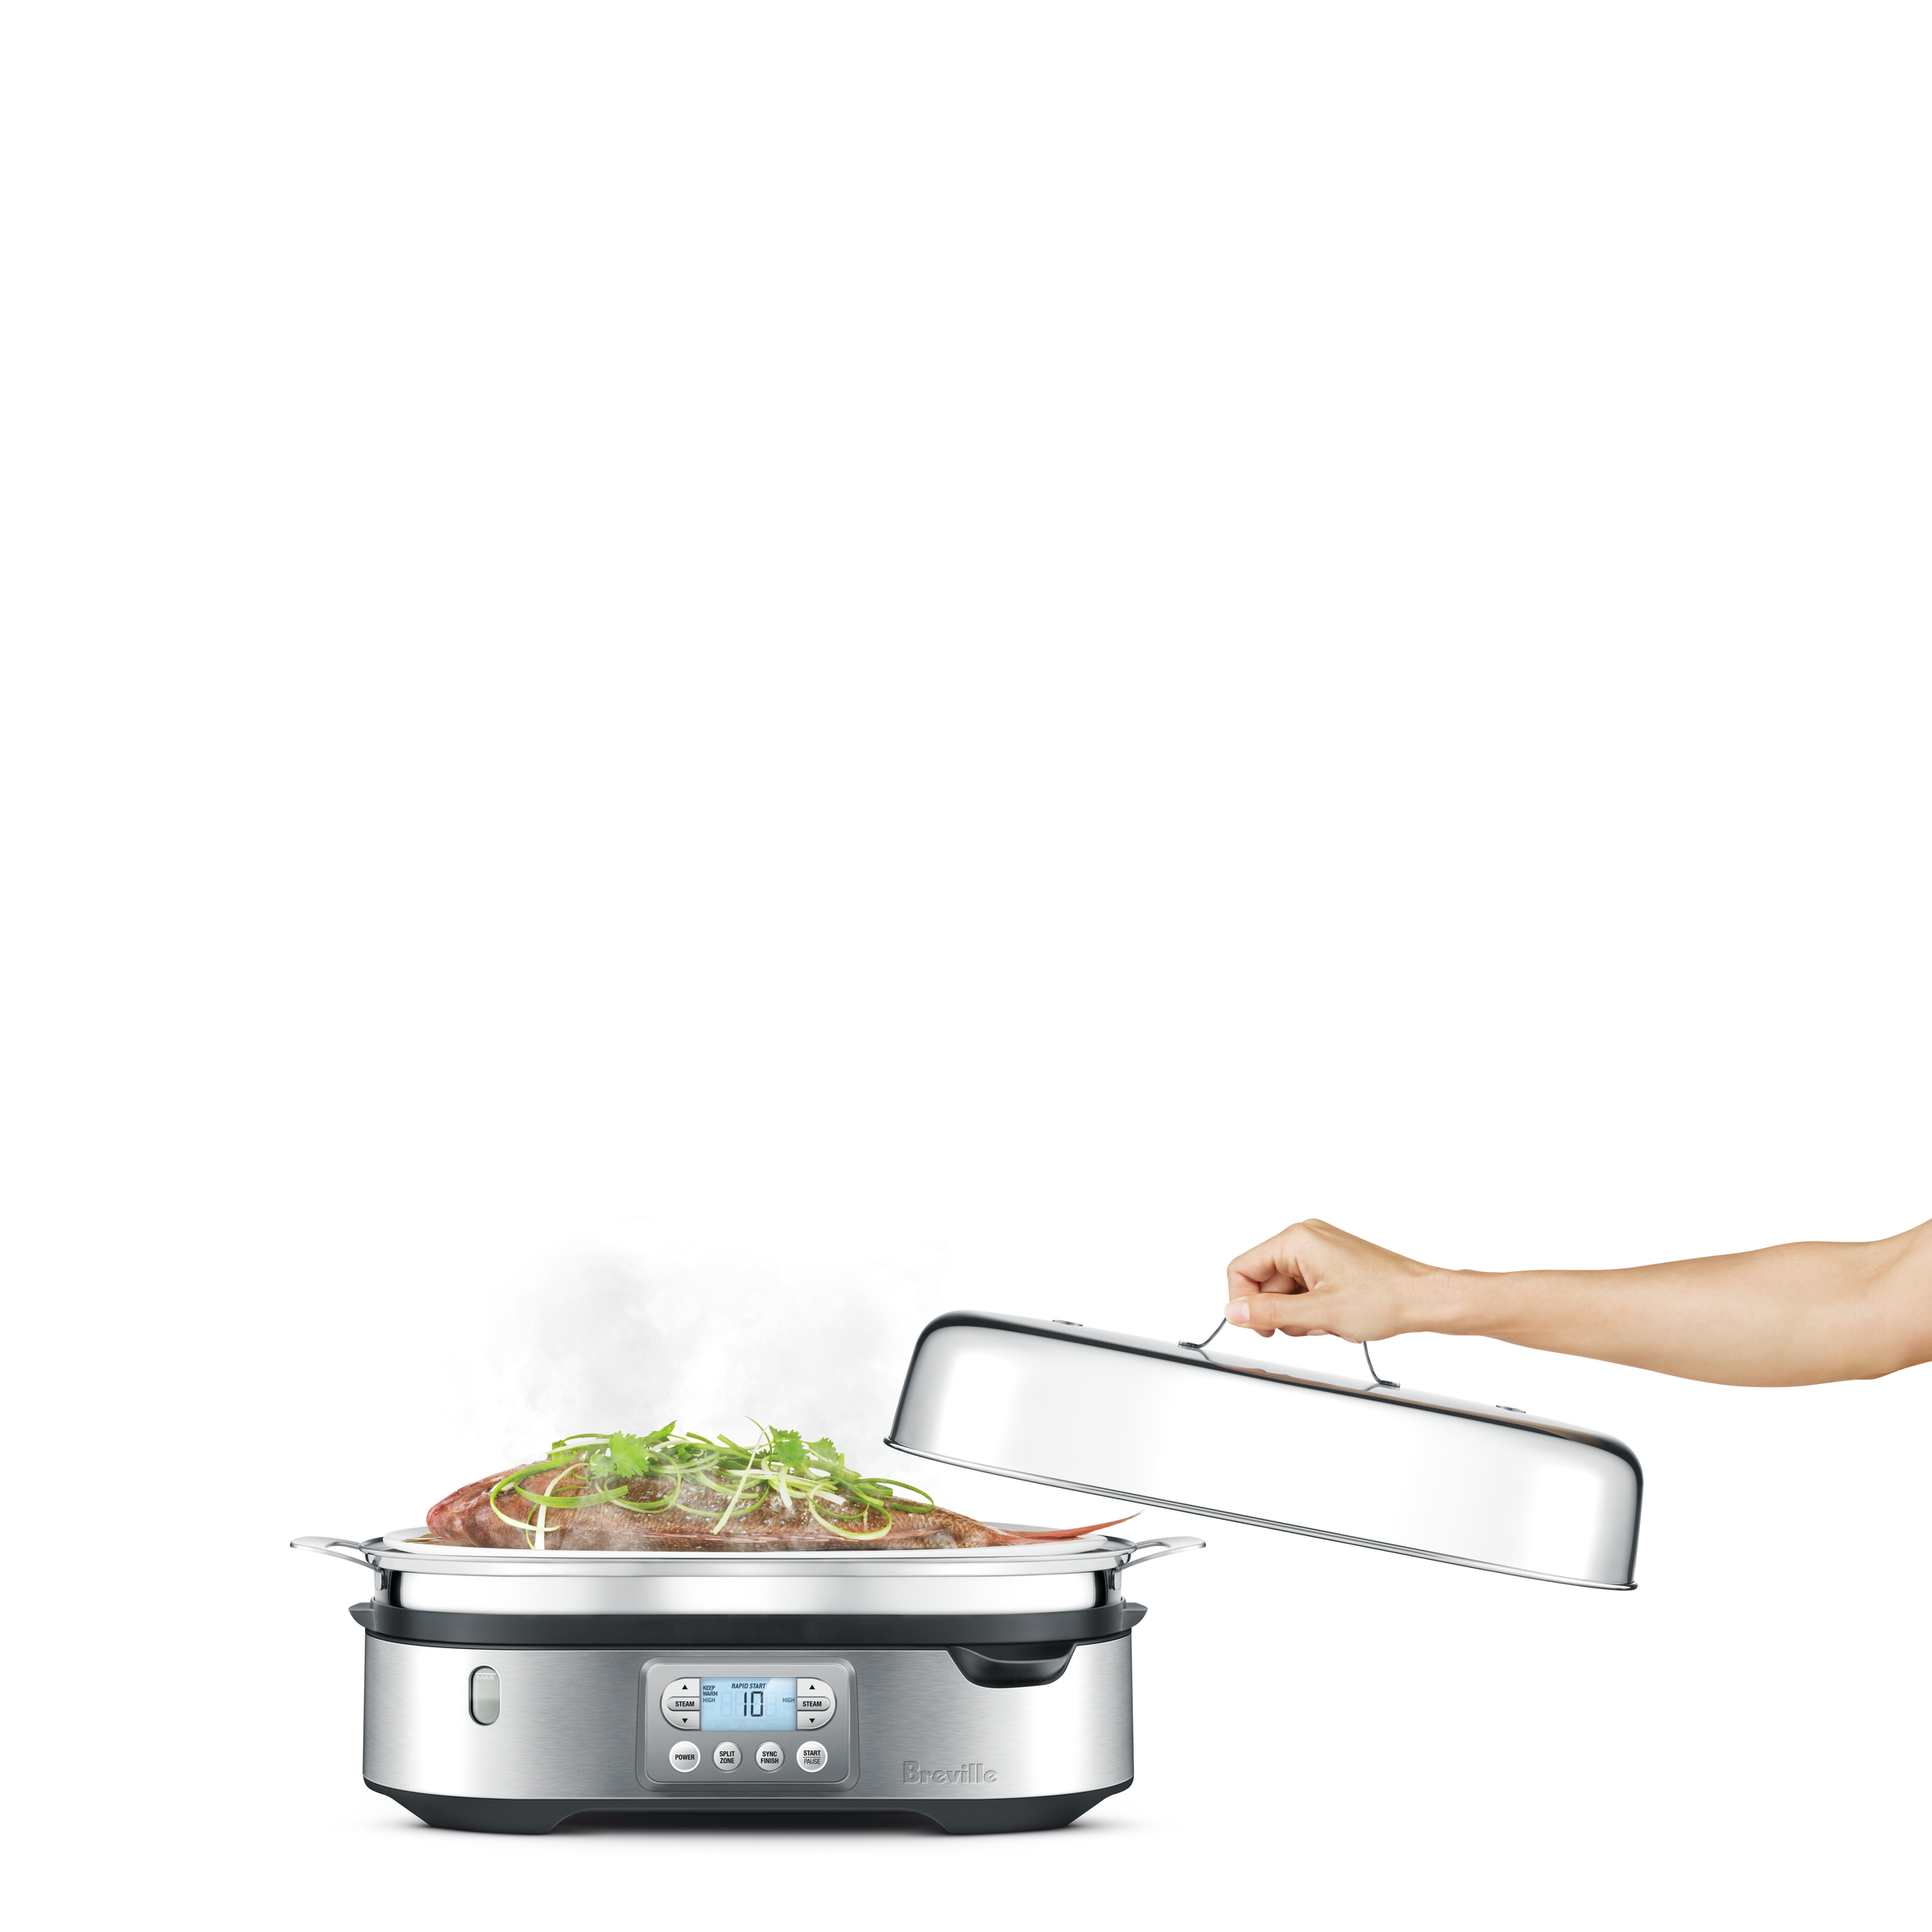 The Steam Zone™ Cooker In Brushed Stainless Steel with food